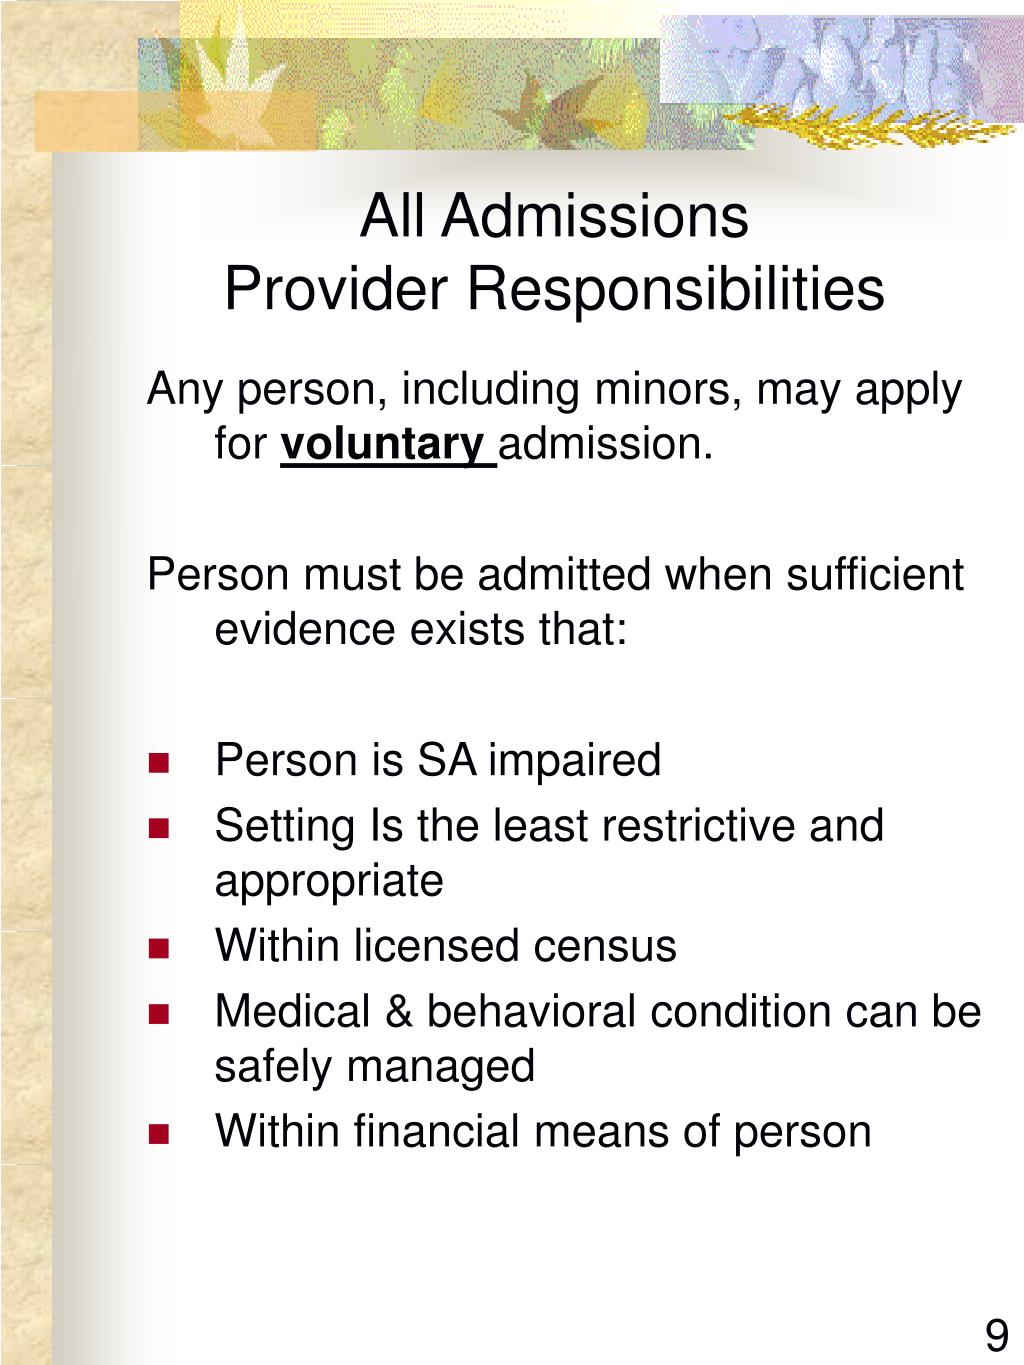 All Admissions